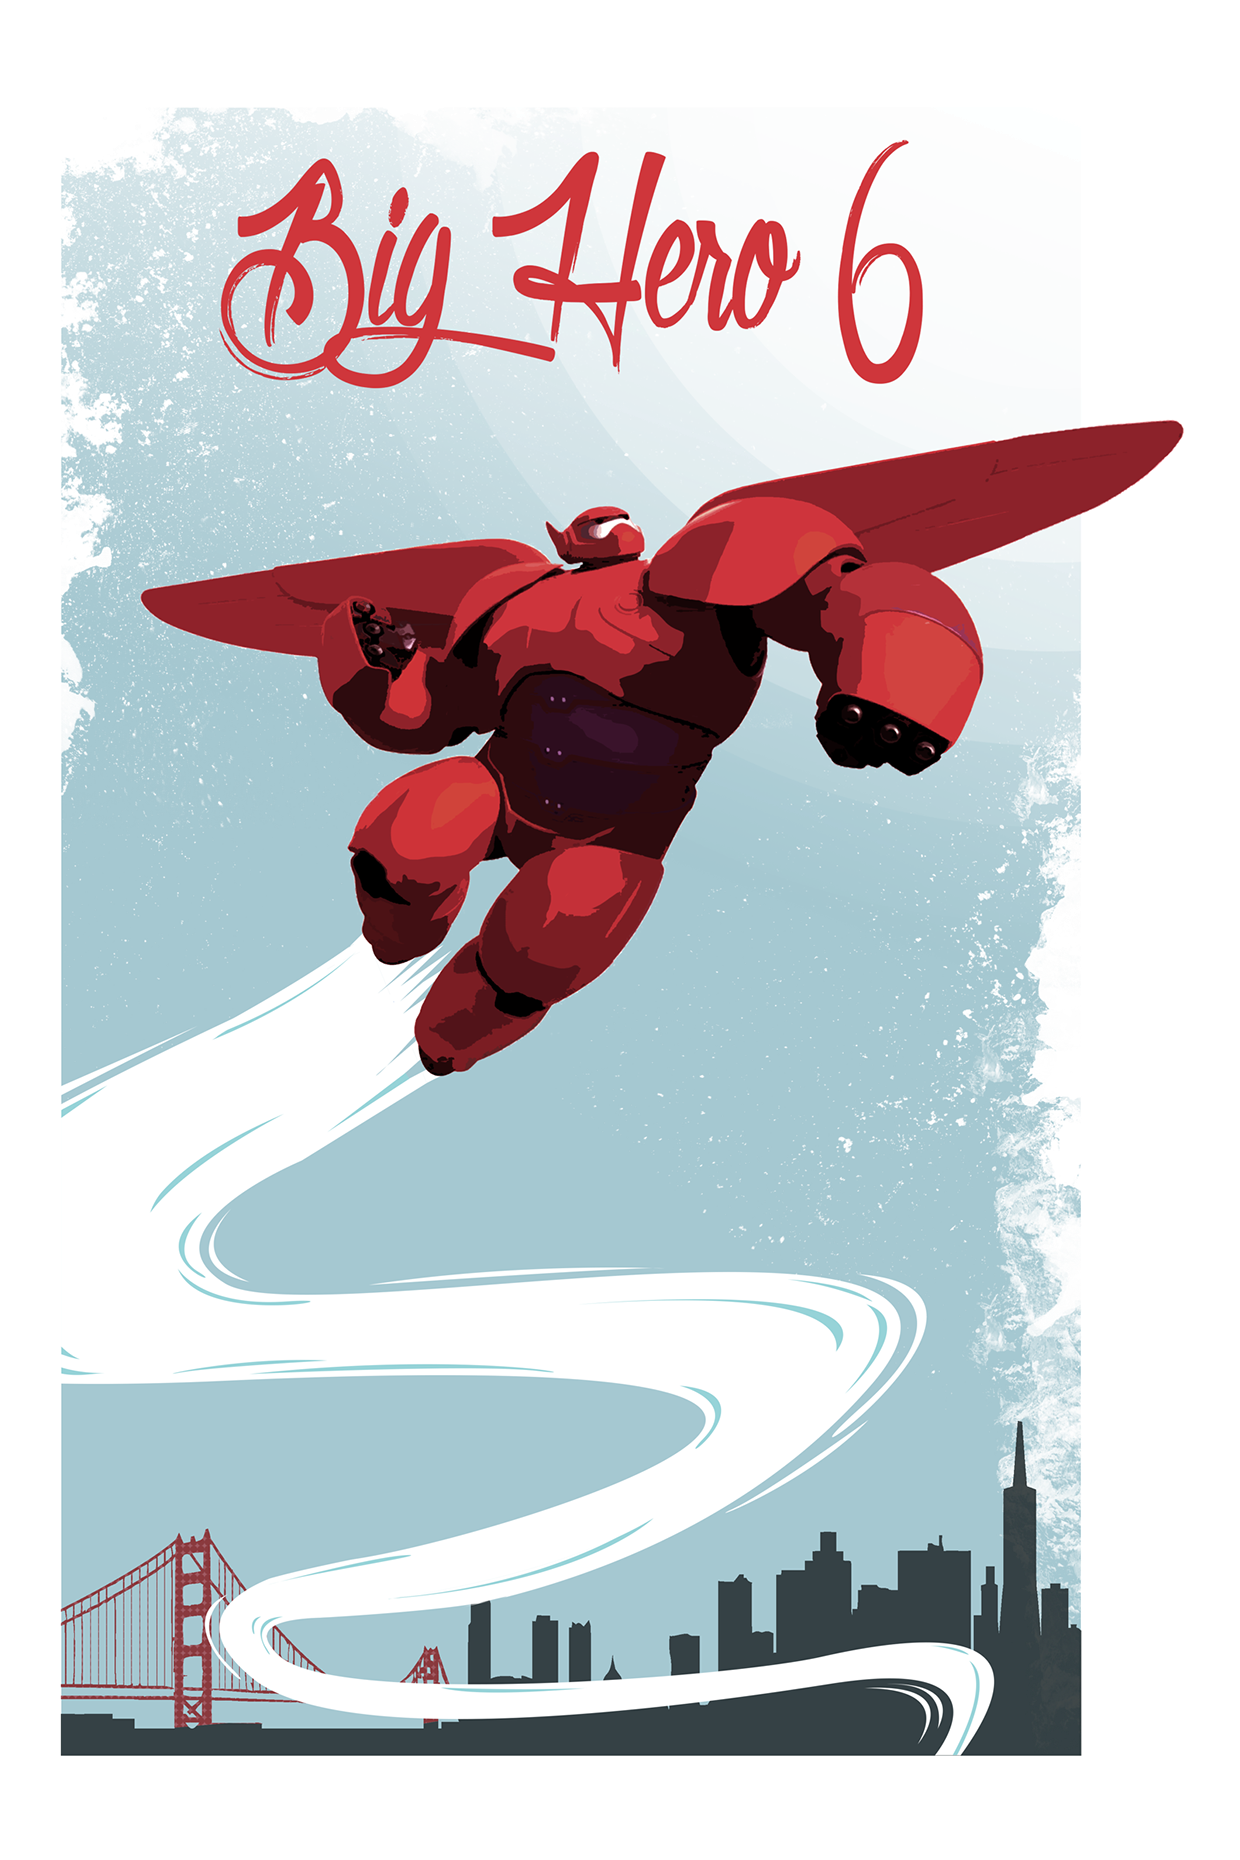 Big Hero 6 Poster by Julien Missaire | Disney Graphic Art ...